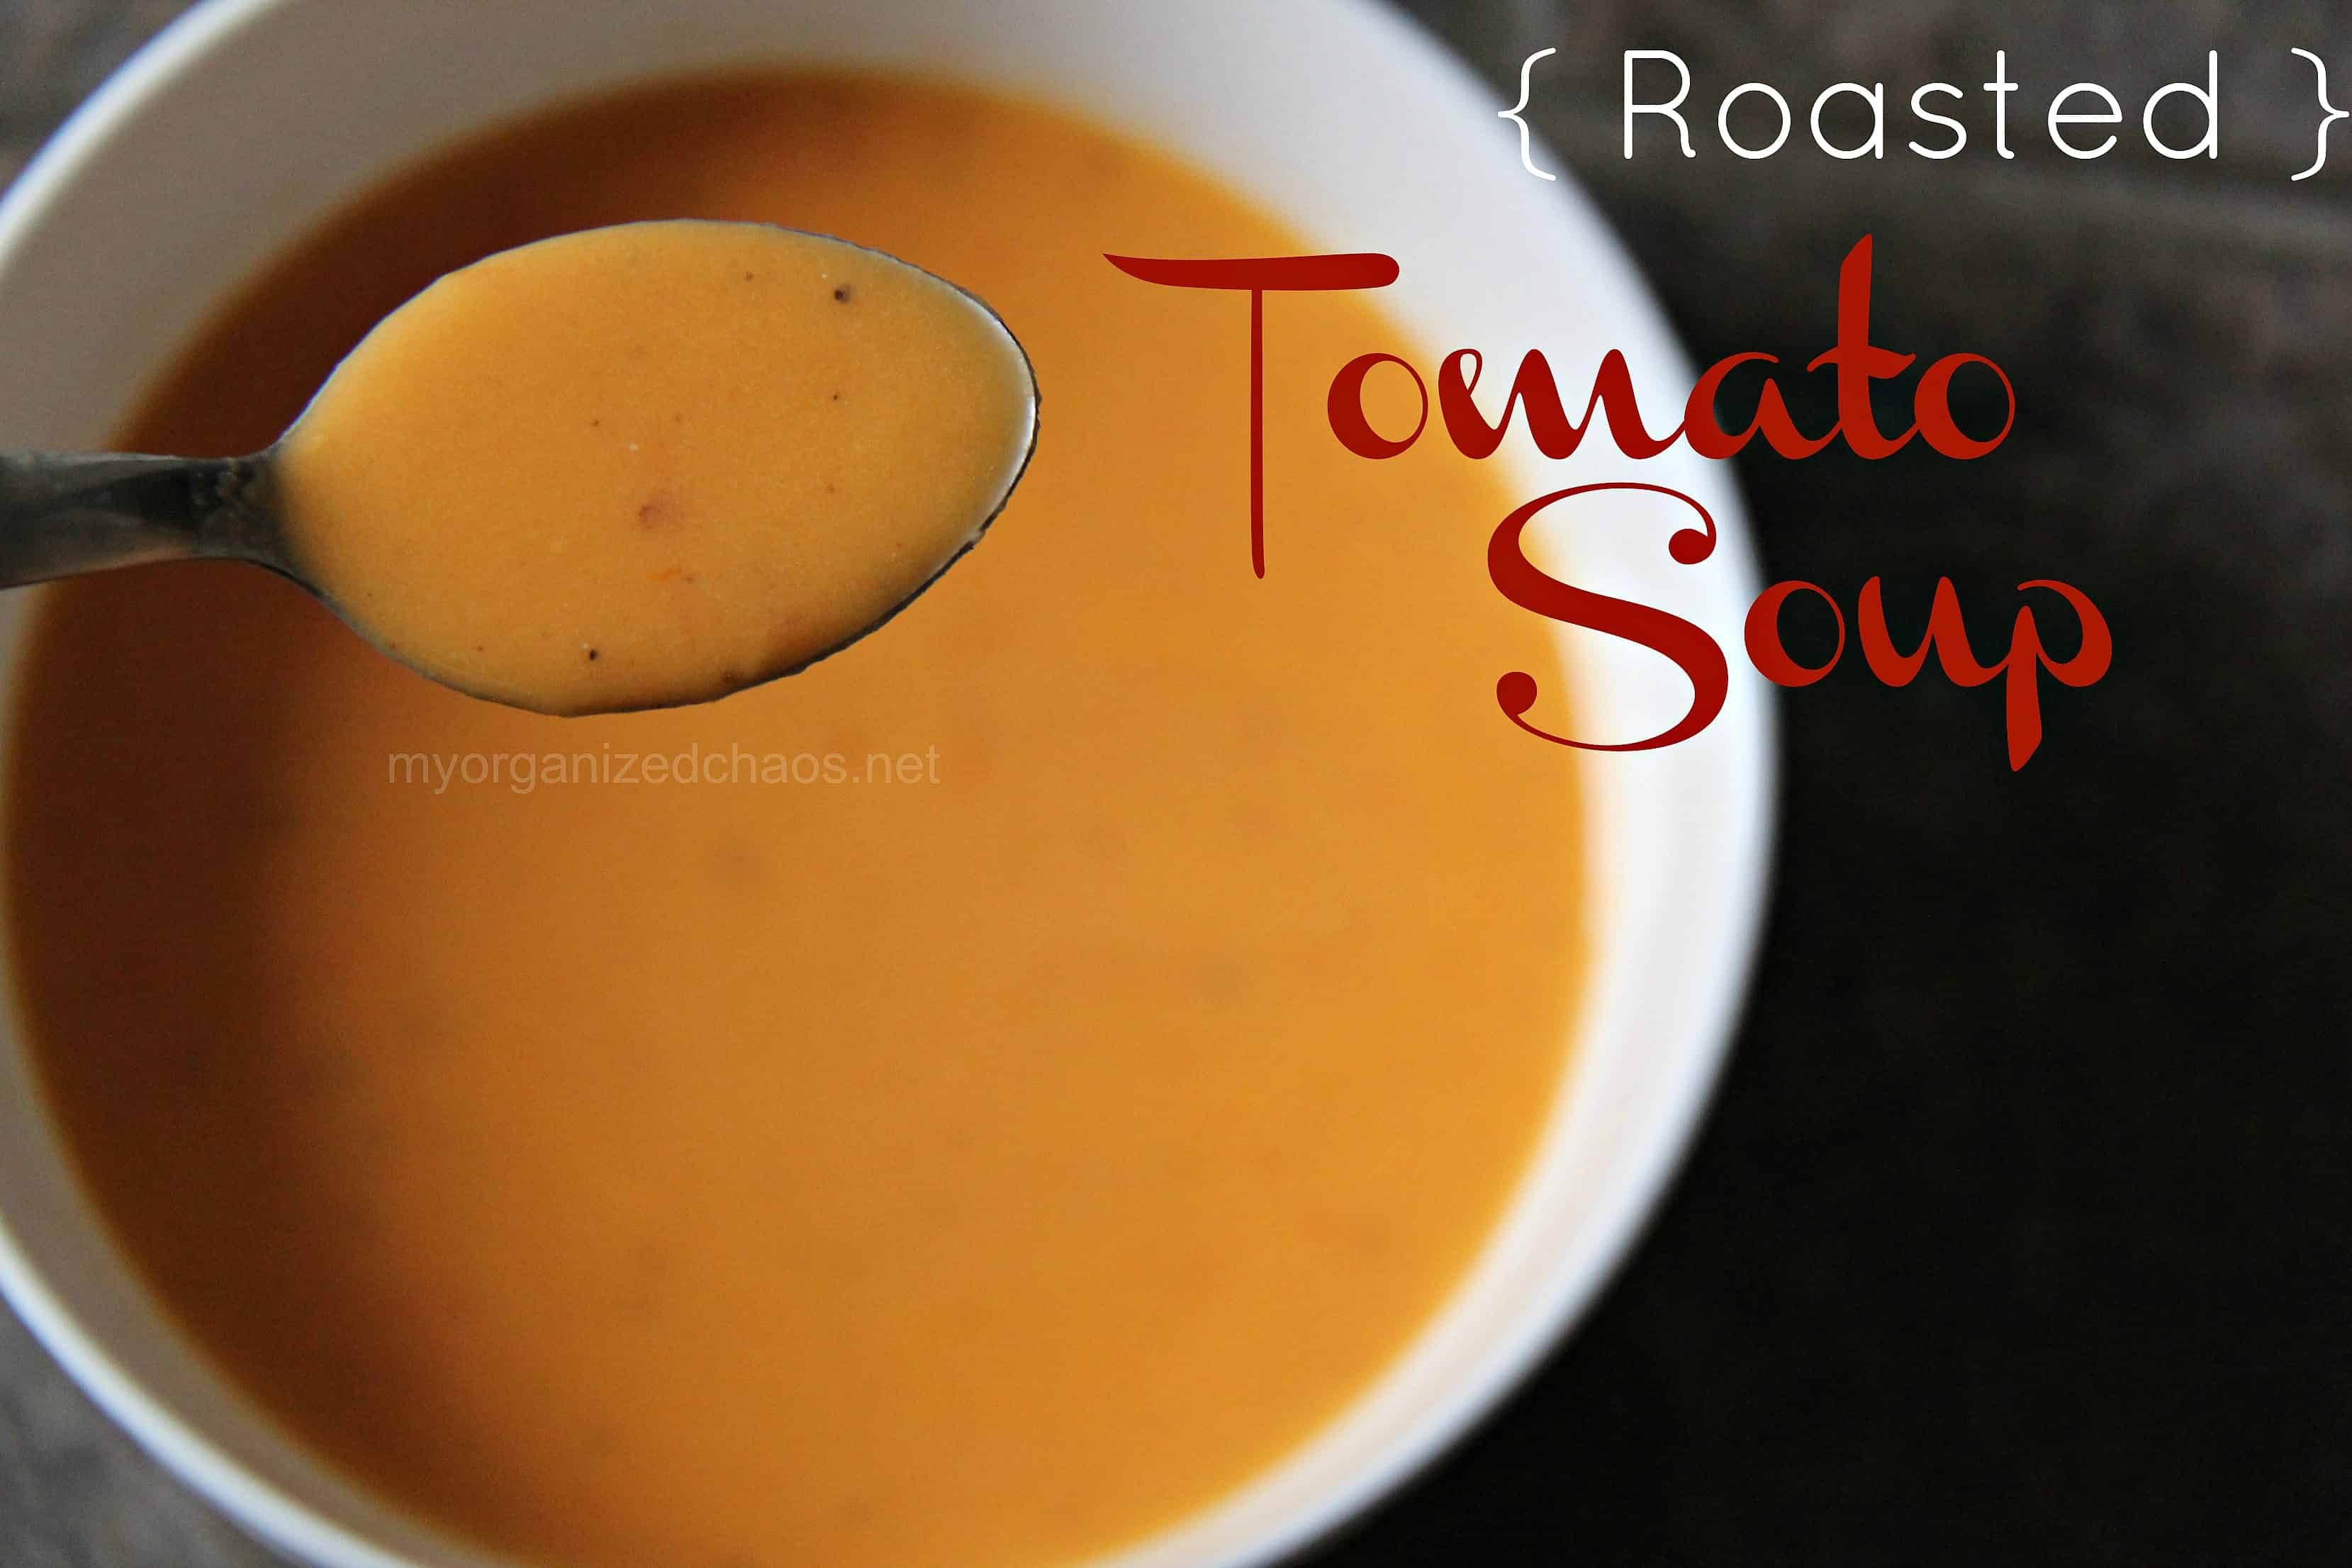 Roasted Tomato Soup - My Organized Chaos